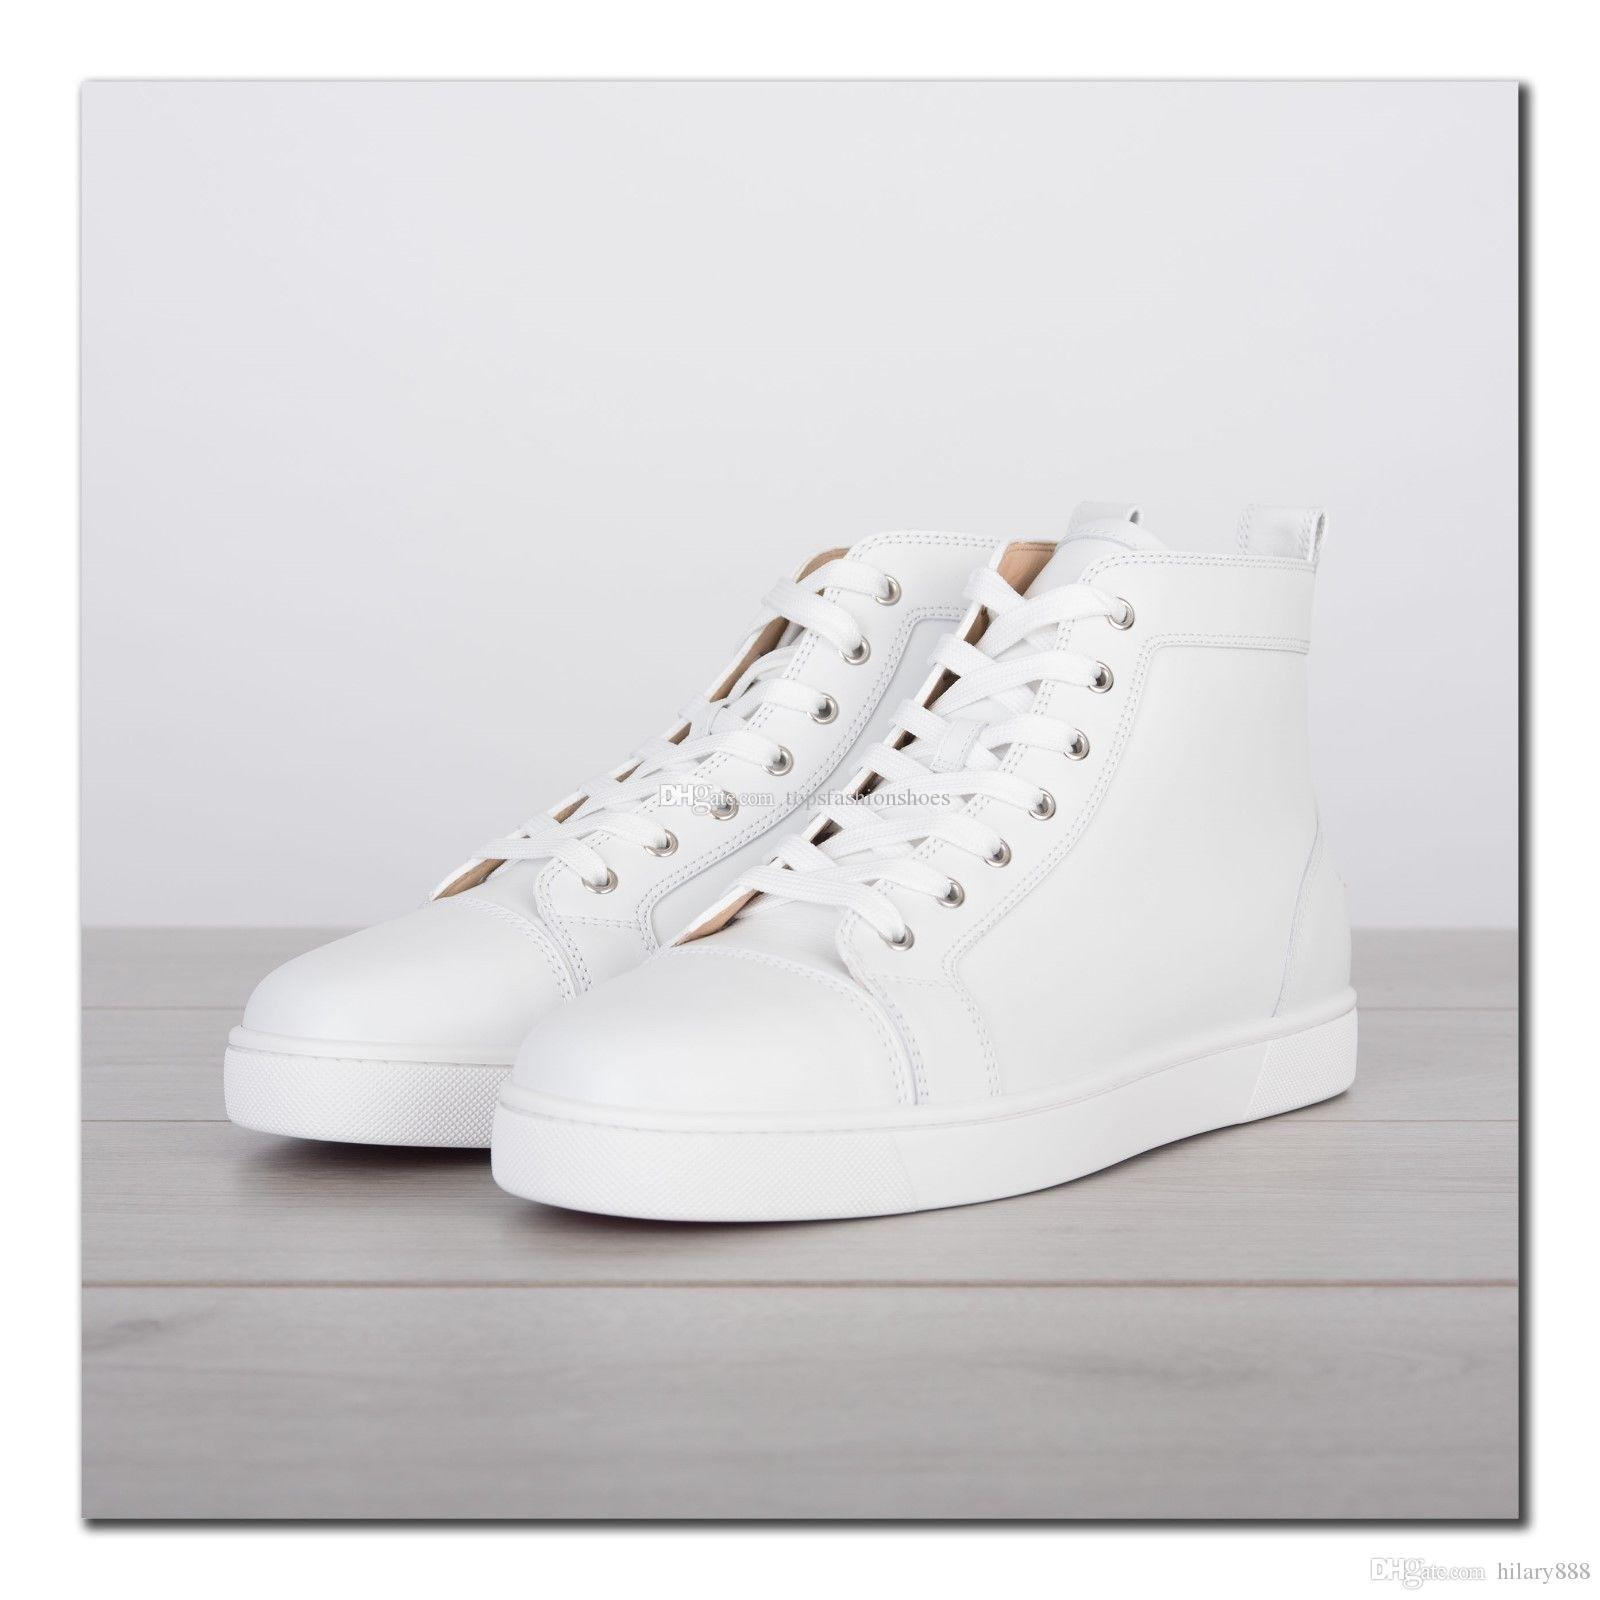 White Genuine Leather Sneakers Shoes